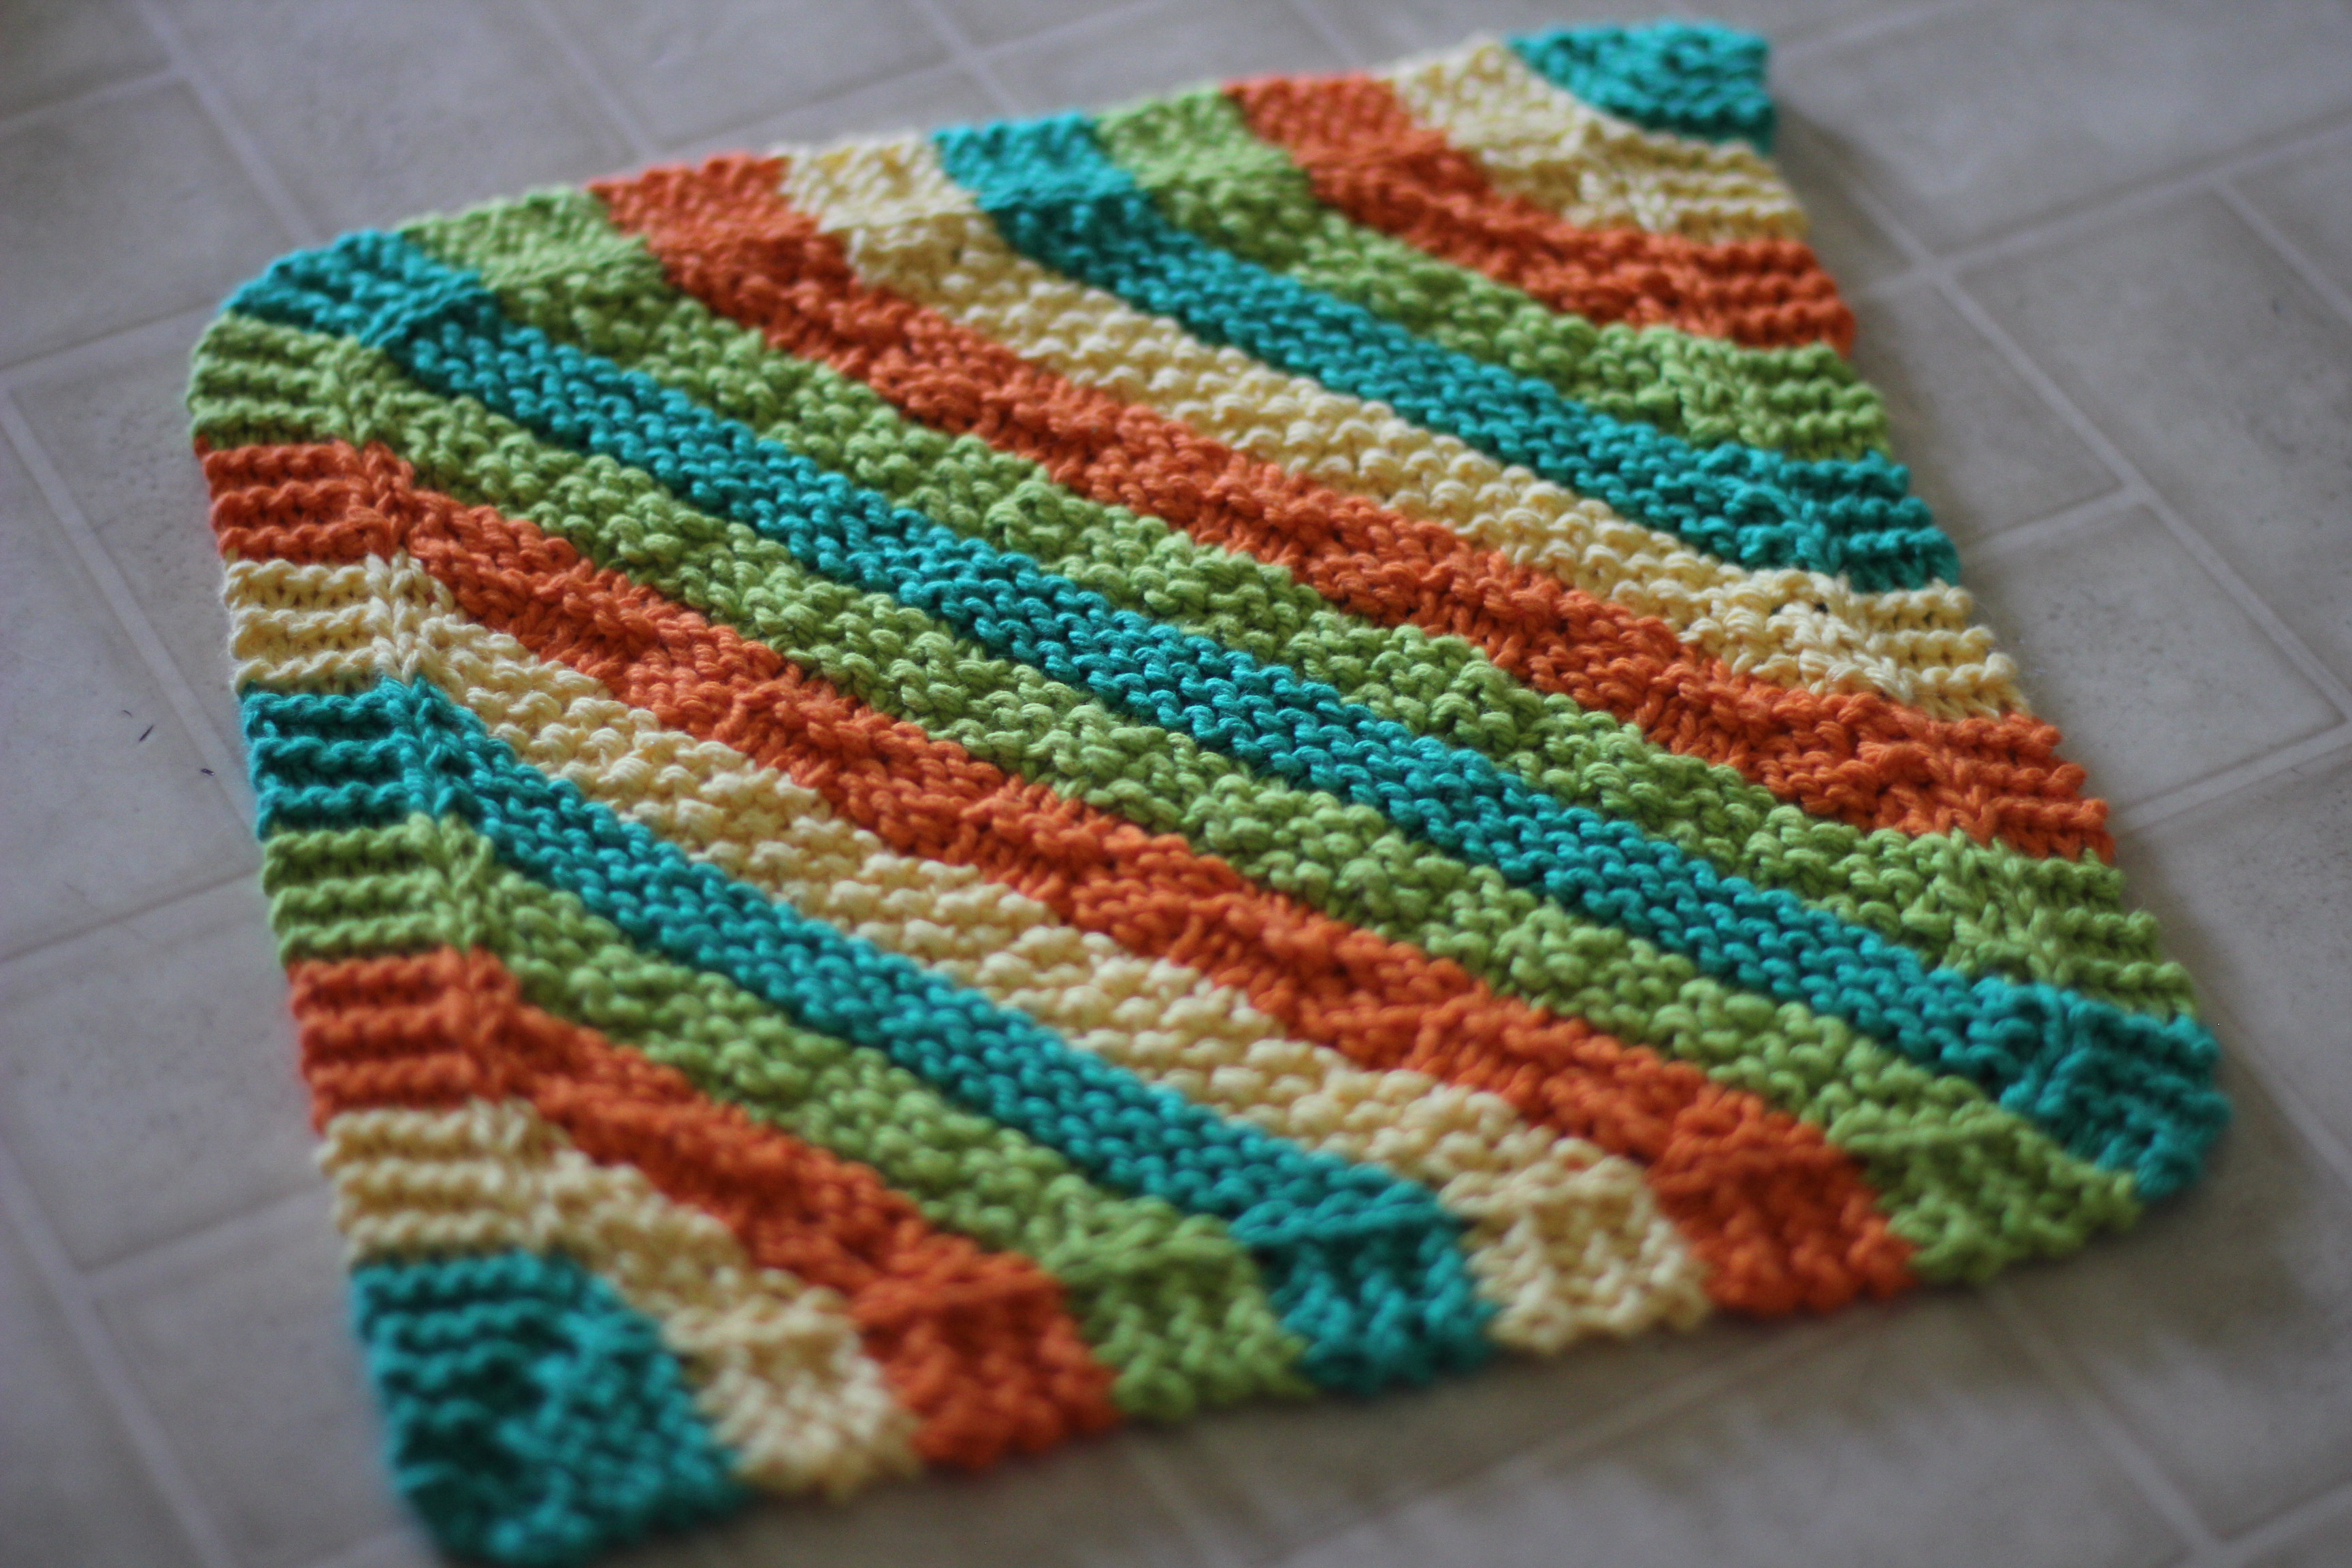 Knitted Dishcloth Patterns Elegant Knitted Dishcloth Patterns Of Brilliant 47 Pics Knitted Dishcloth Patterns